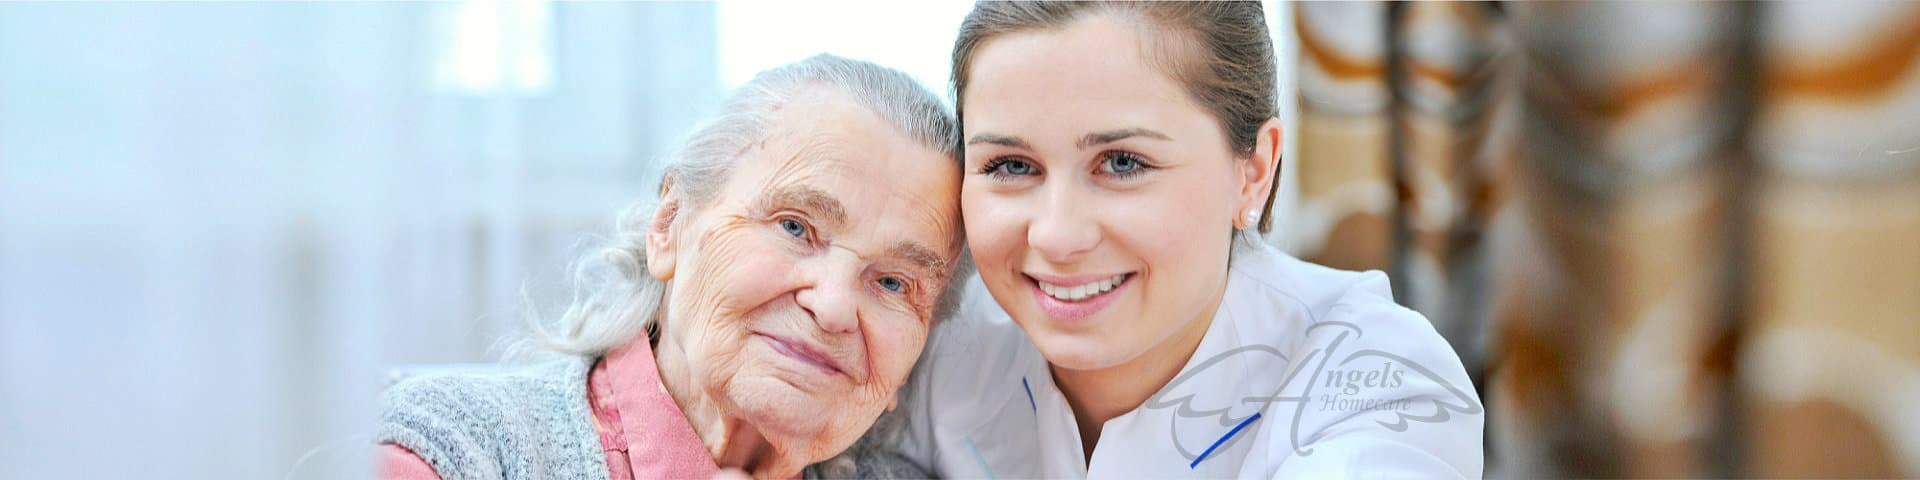 an elderly woman and a nurse are smiling